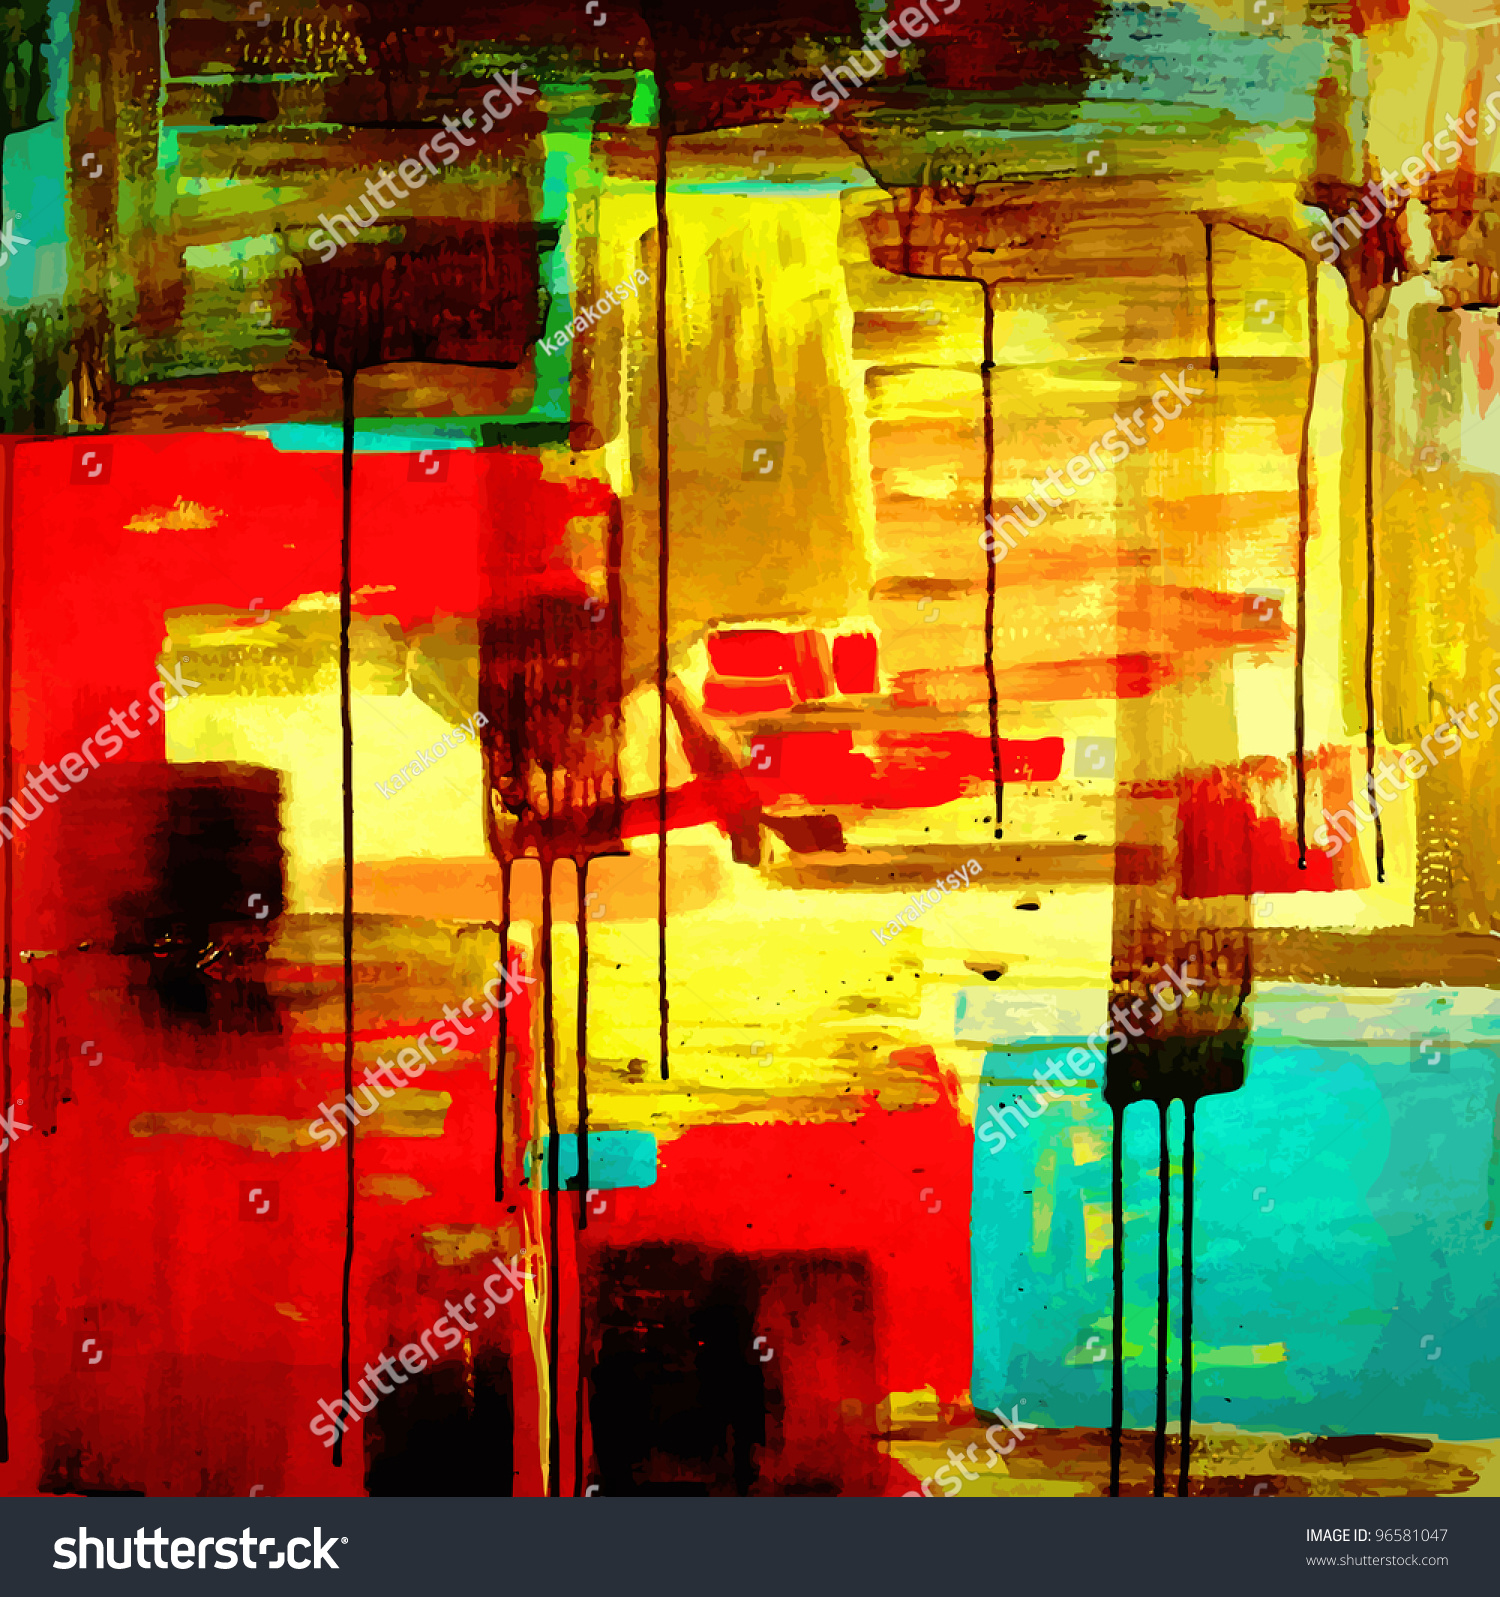 Abstract hand draw acrylic painting composition stock for Abstract painting in acrylic